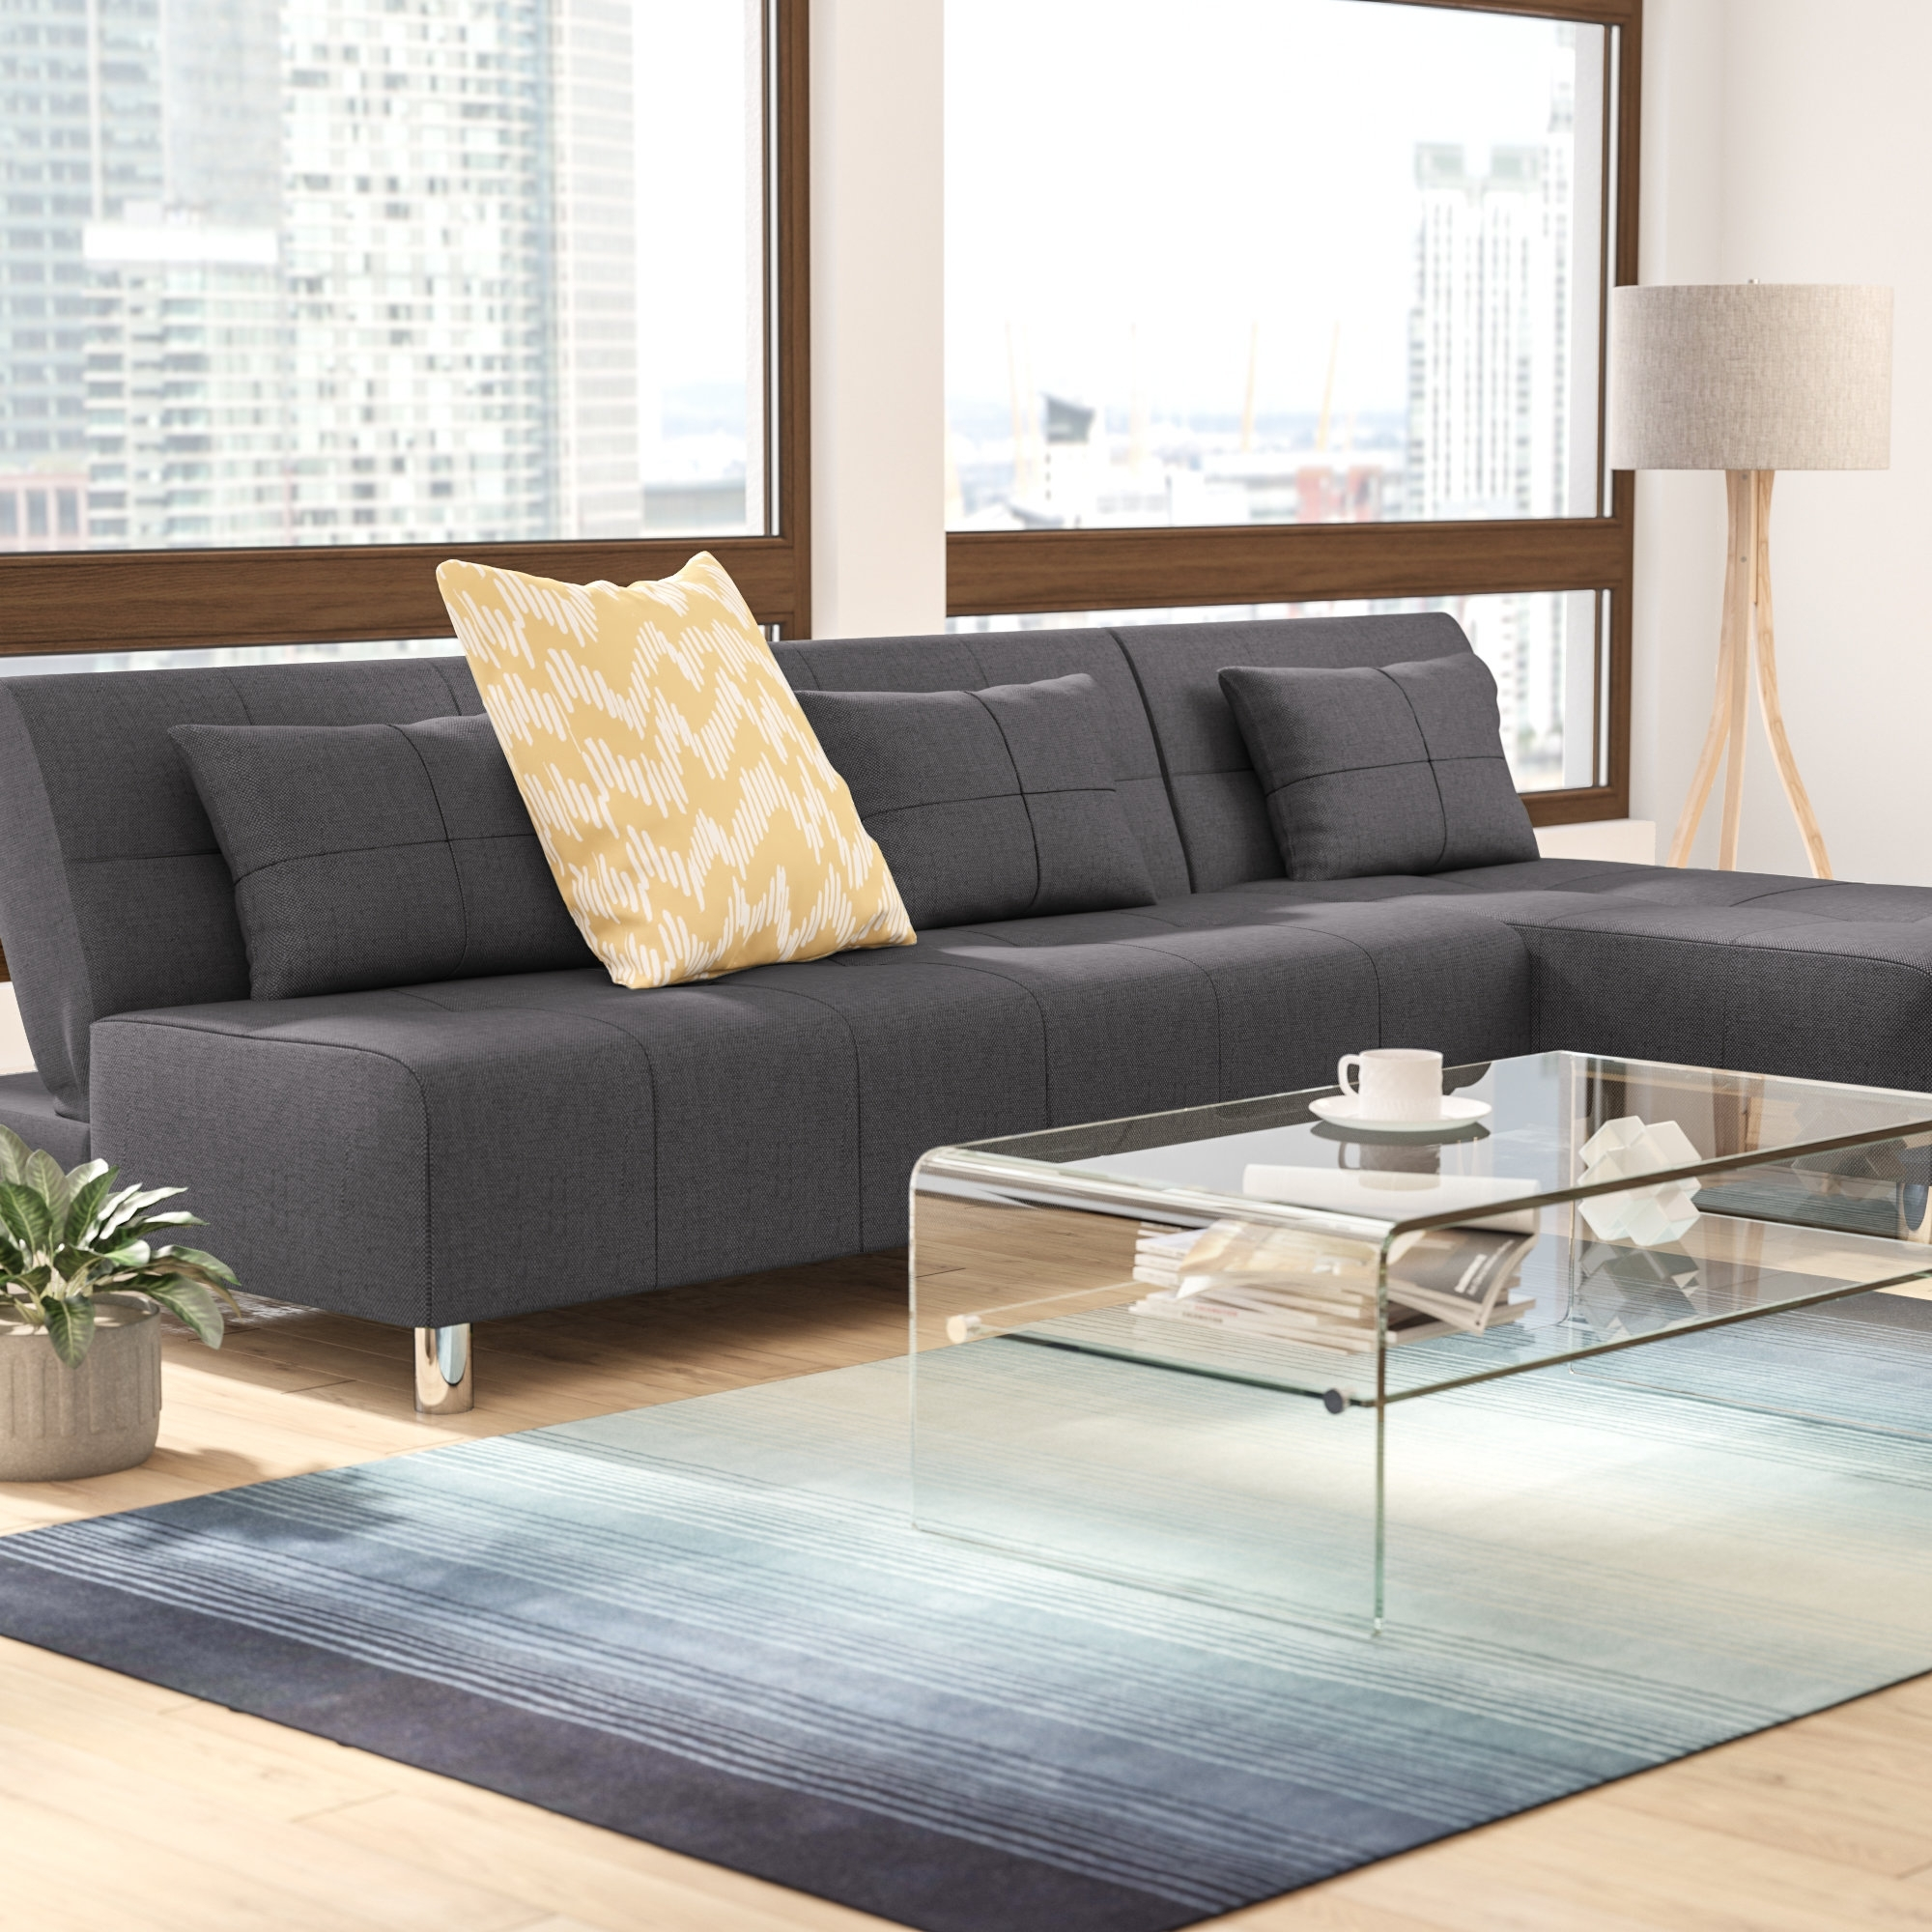 Wade Logan Ricardo Reversible Sleeper Sectional & Reviews | Wayfair Within Collins Sofa Sectionals With Reversible Chaise (View 12 of 25)